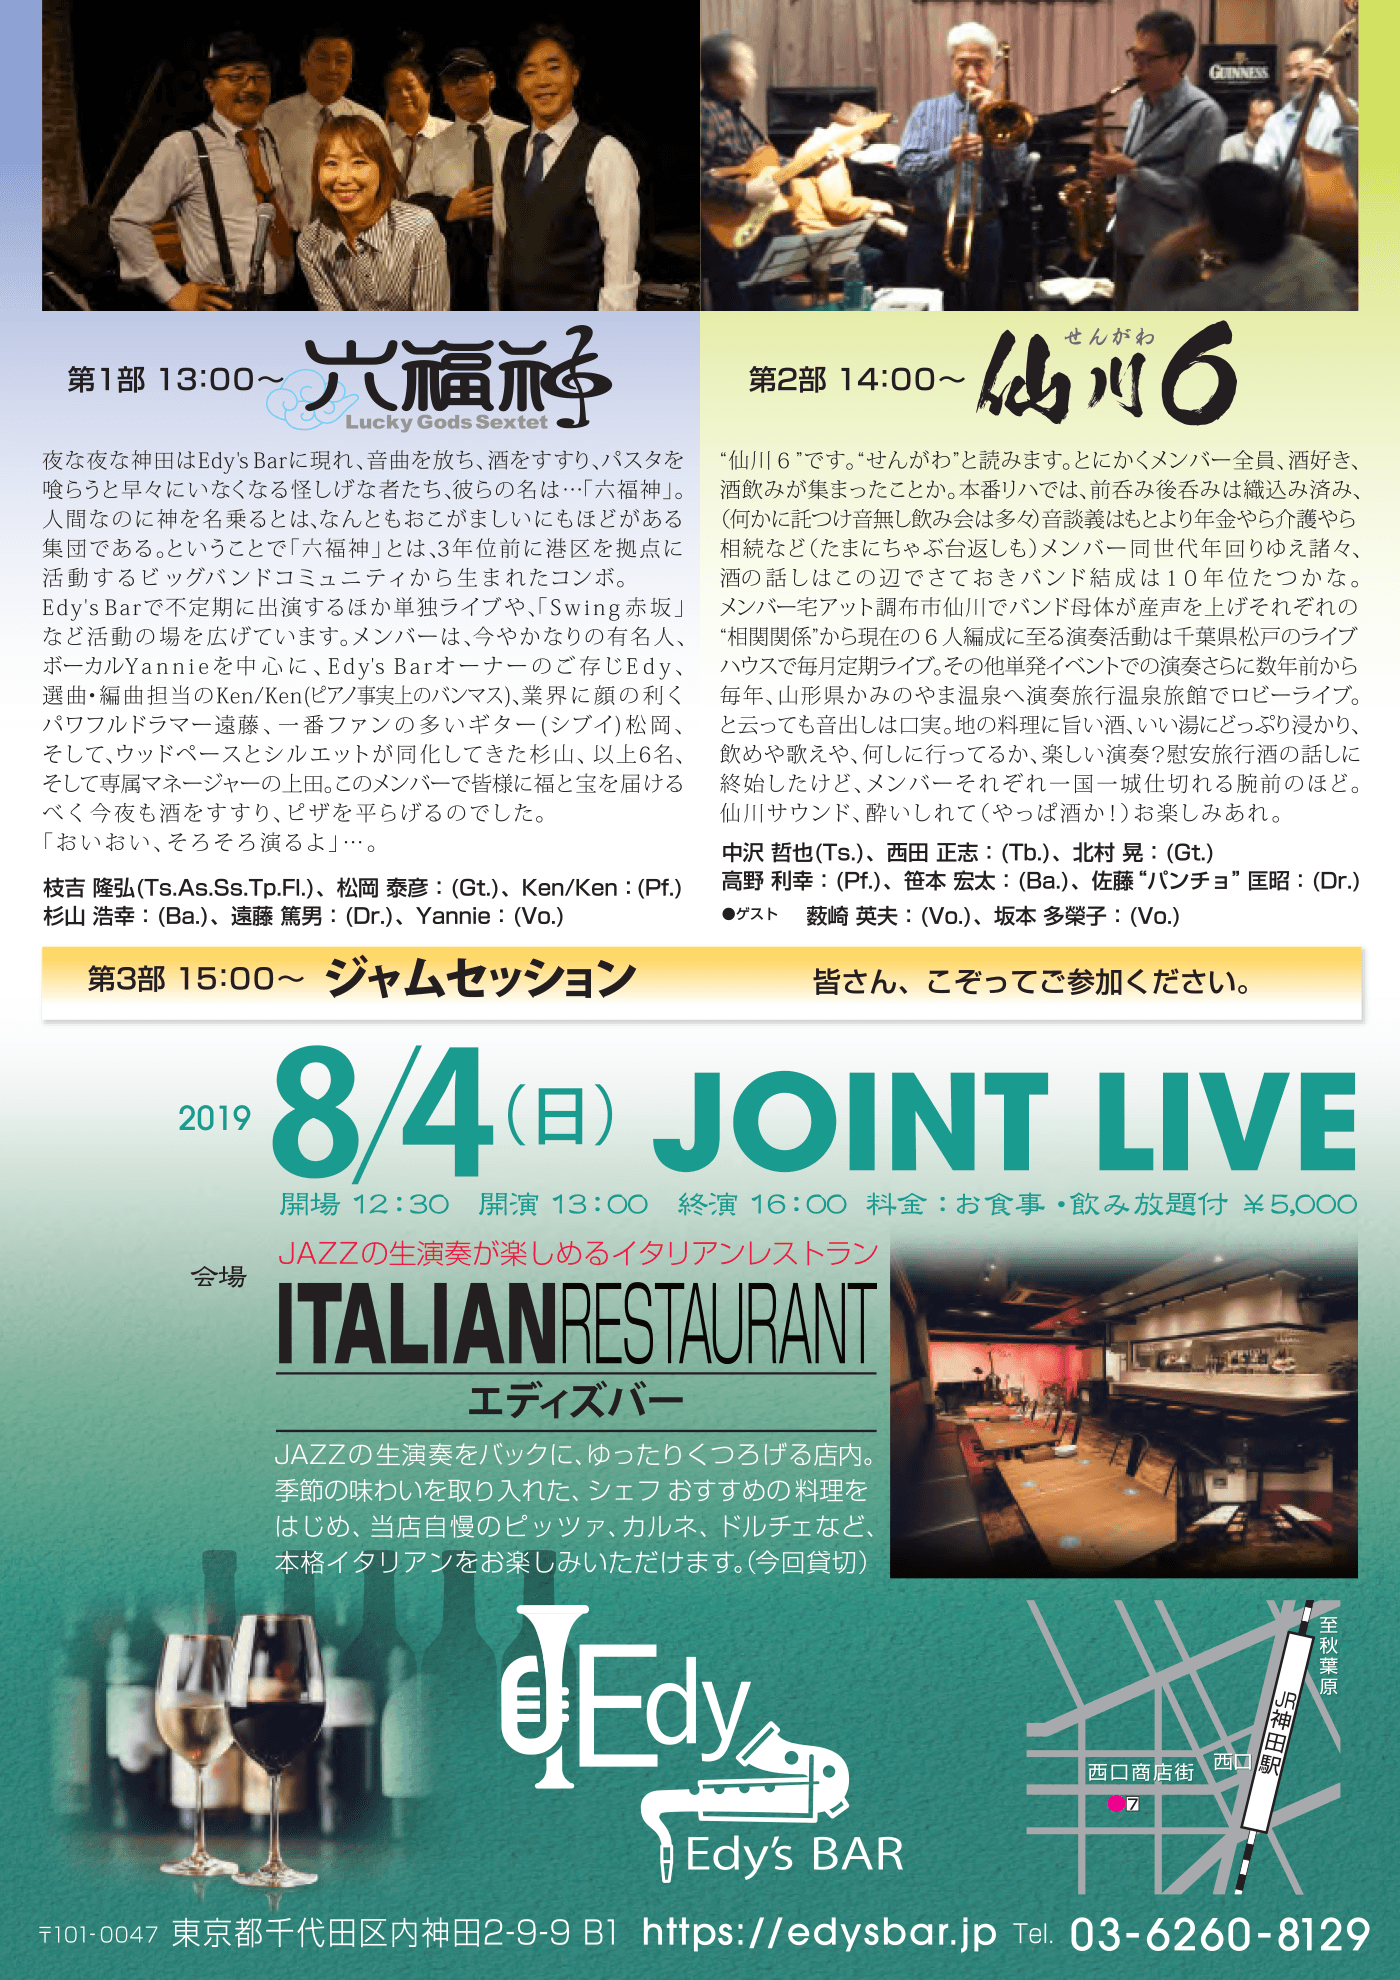 20190804_JointLive_02